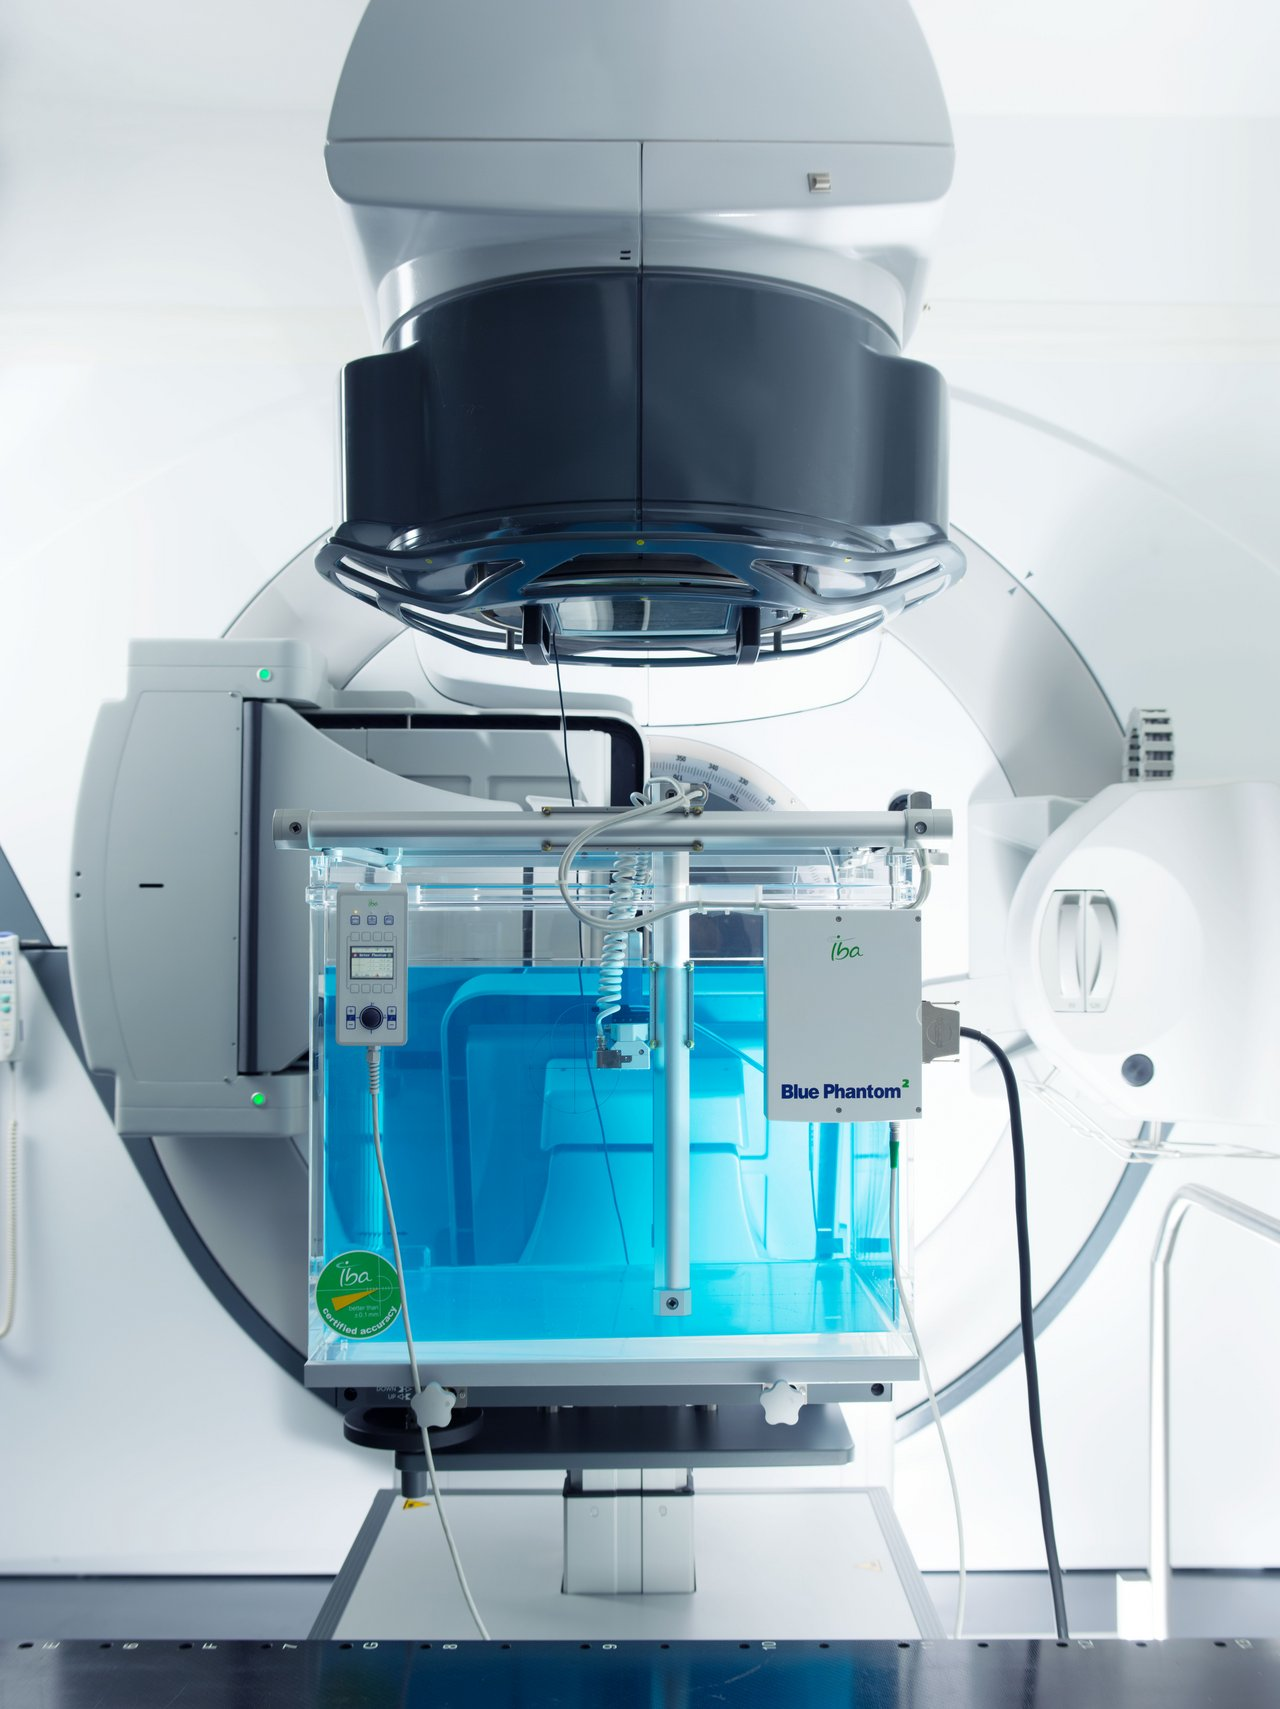 Product Blue Phantom2 of IBA Dosimetry with linac